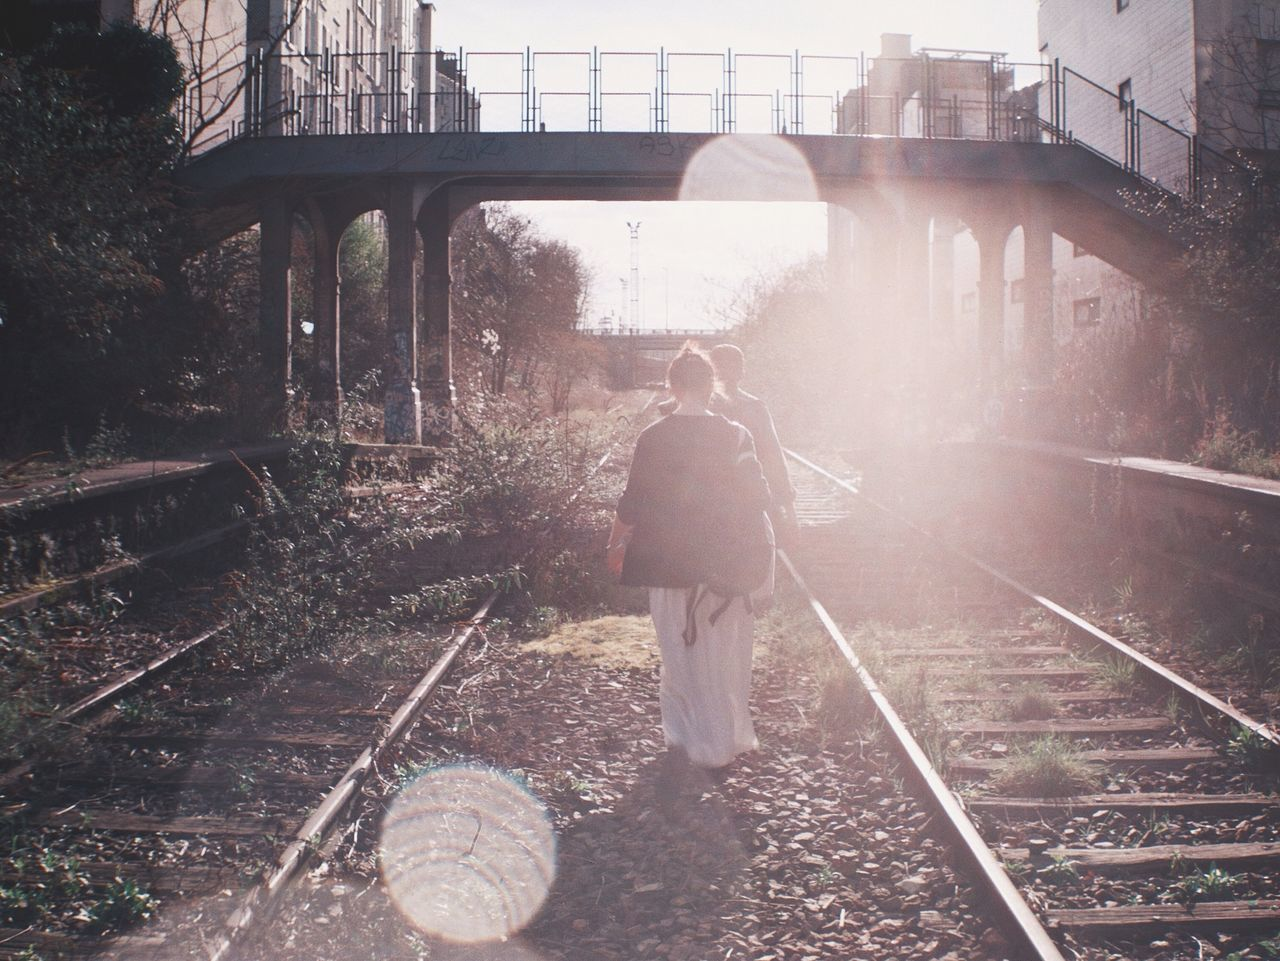 Rear view of people walking by abandoned railroad tracks